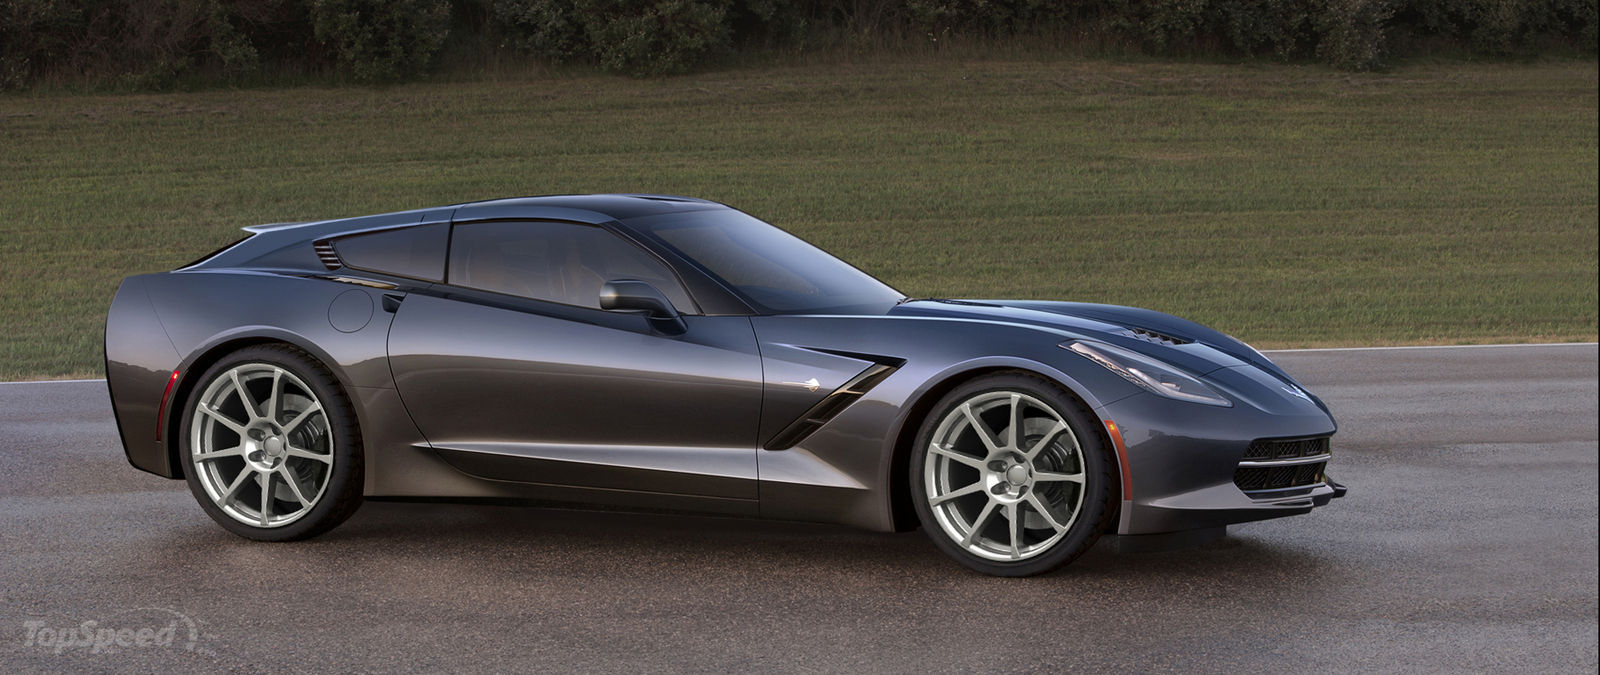 -if-corvette-team-made-suv-2014-chevrolet-corvette-s-29_1600x0w.jpg